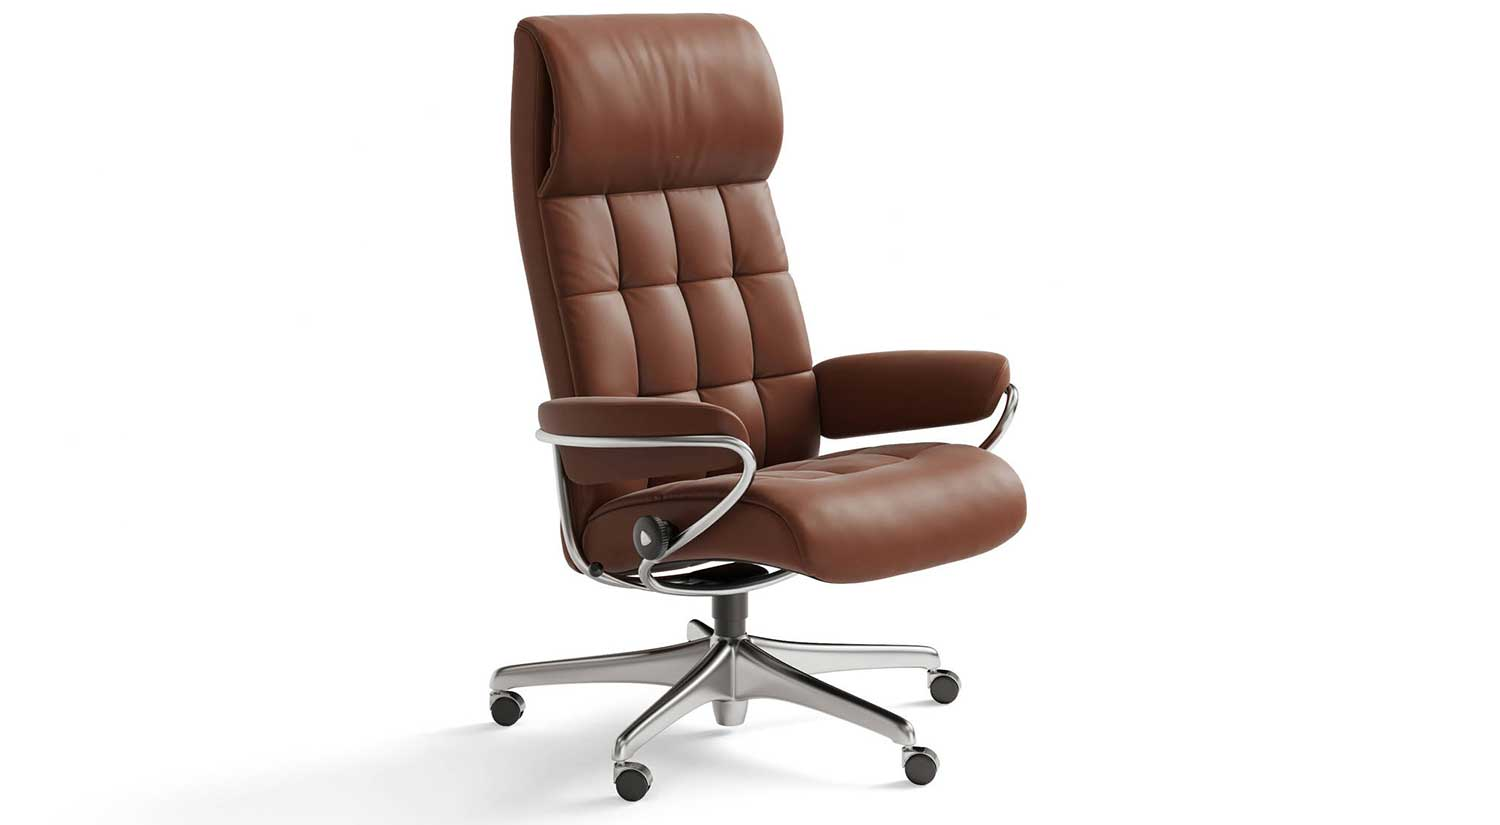 London Highback Office Chair  sc 1 st  Circle Furniture & Circle Furniture - London Highback Office Chair | Stressless Office ...